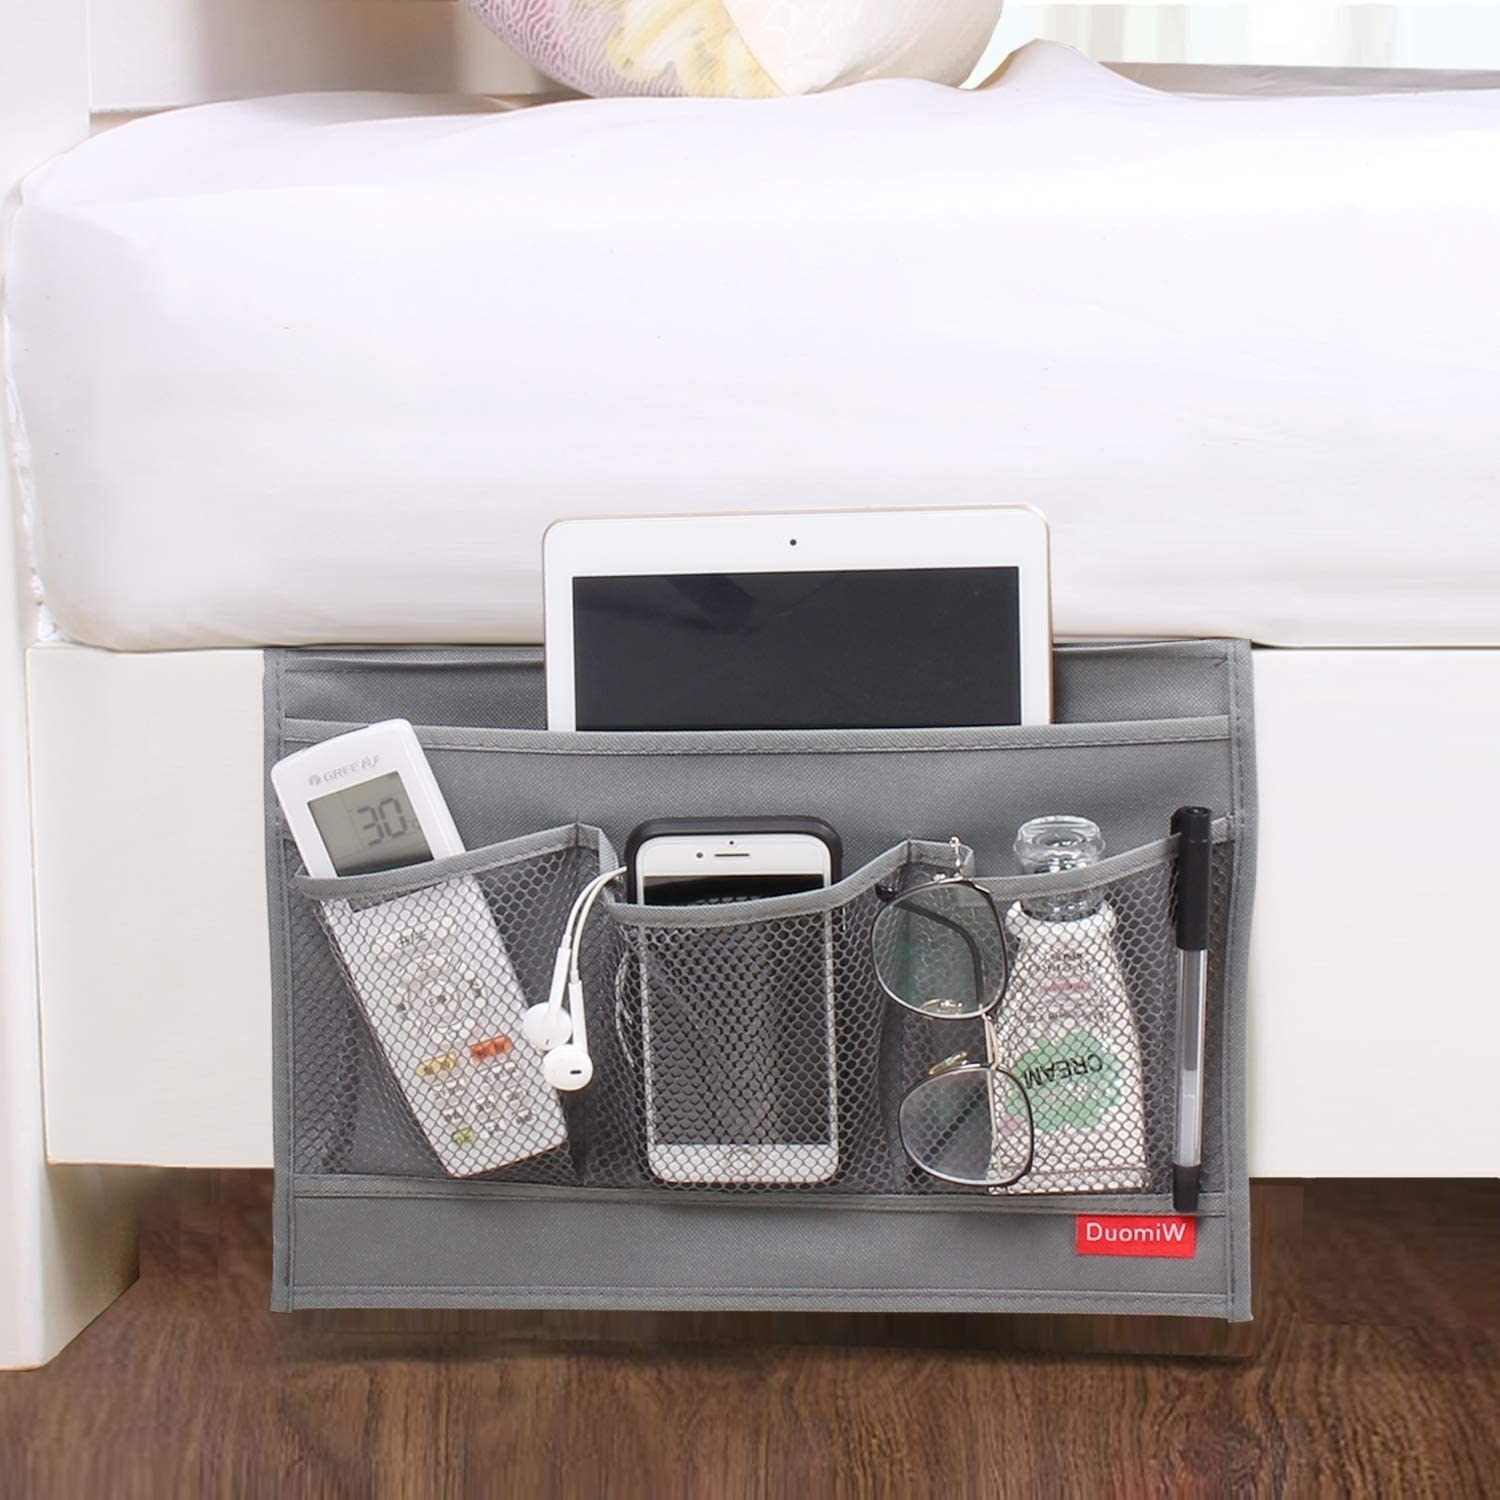 The grey bedside caddy holding a remote, iPad, cellphone, glasses, pen, lotion, and headphones